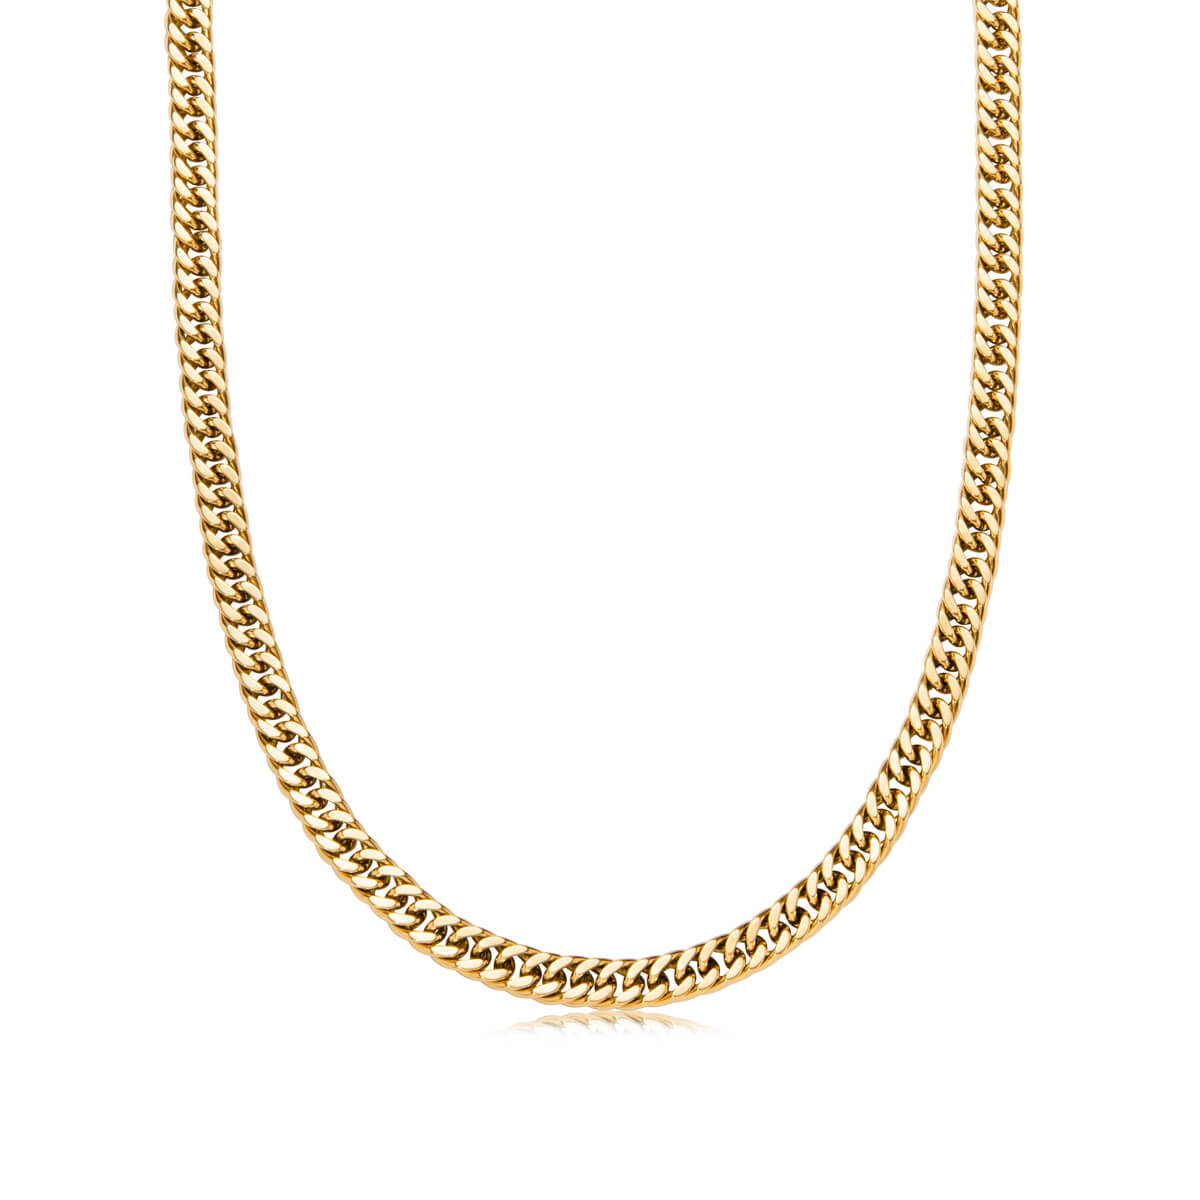 Gold Bar Curb Chain Necklace 18 in (Gold)